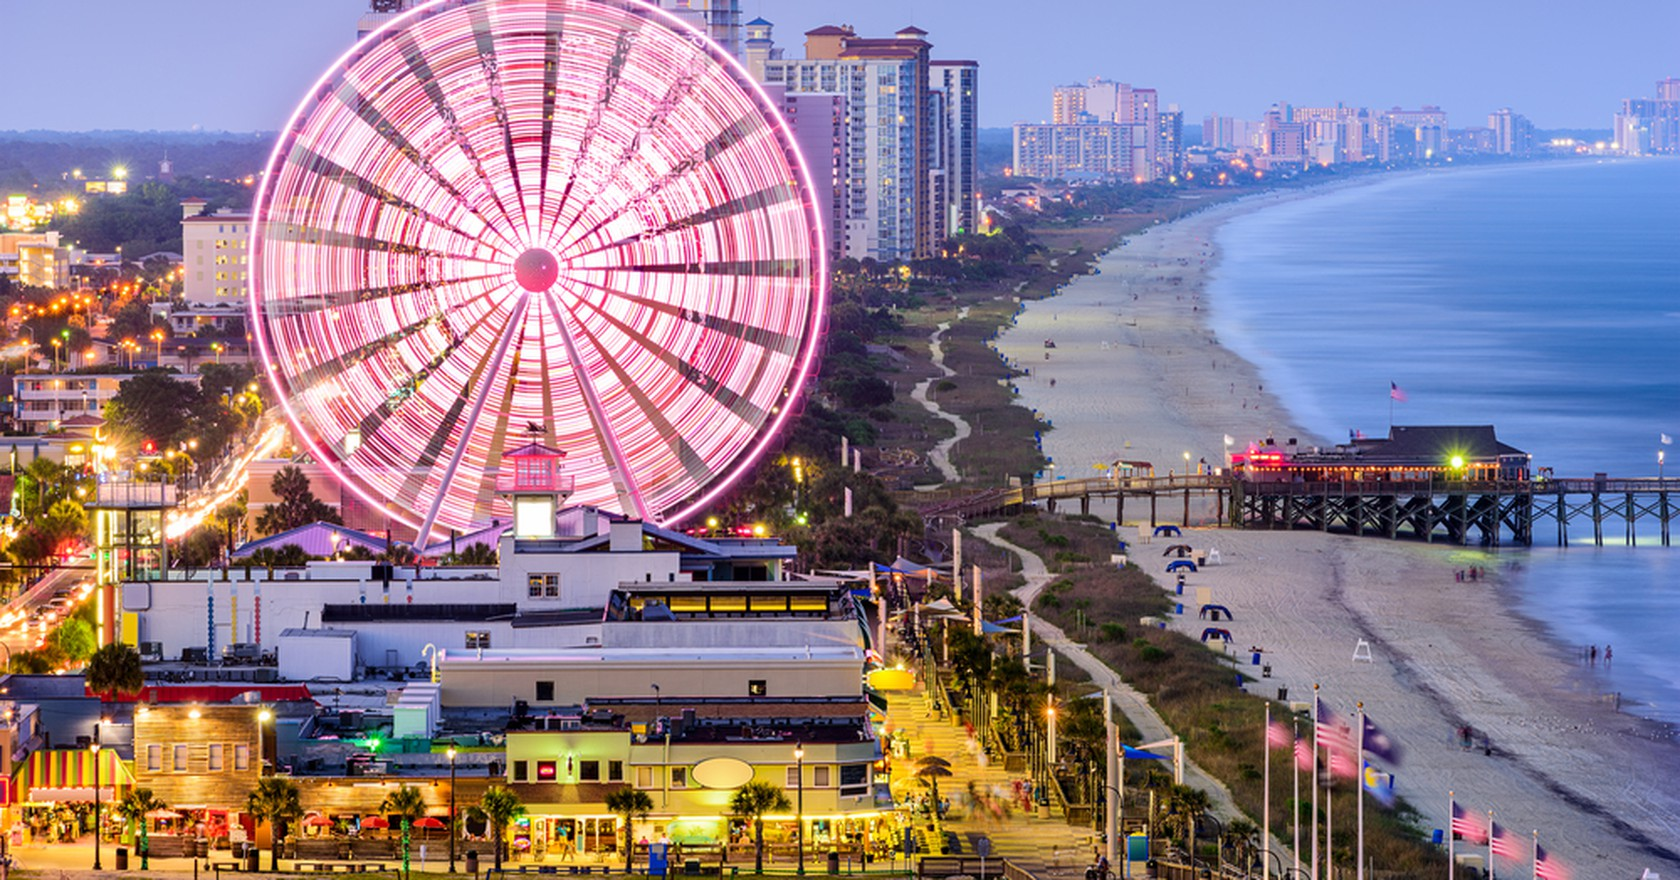 Myrtle Beach South Carolina Sean Pavone Shutterstock